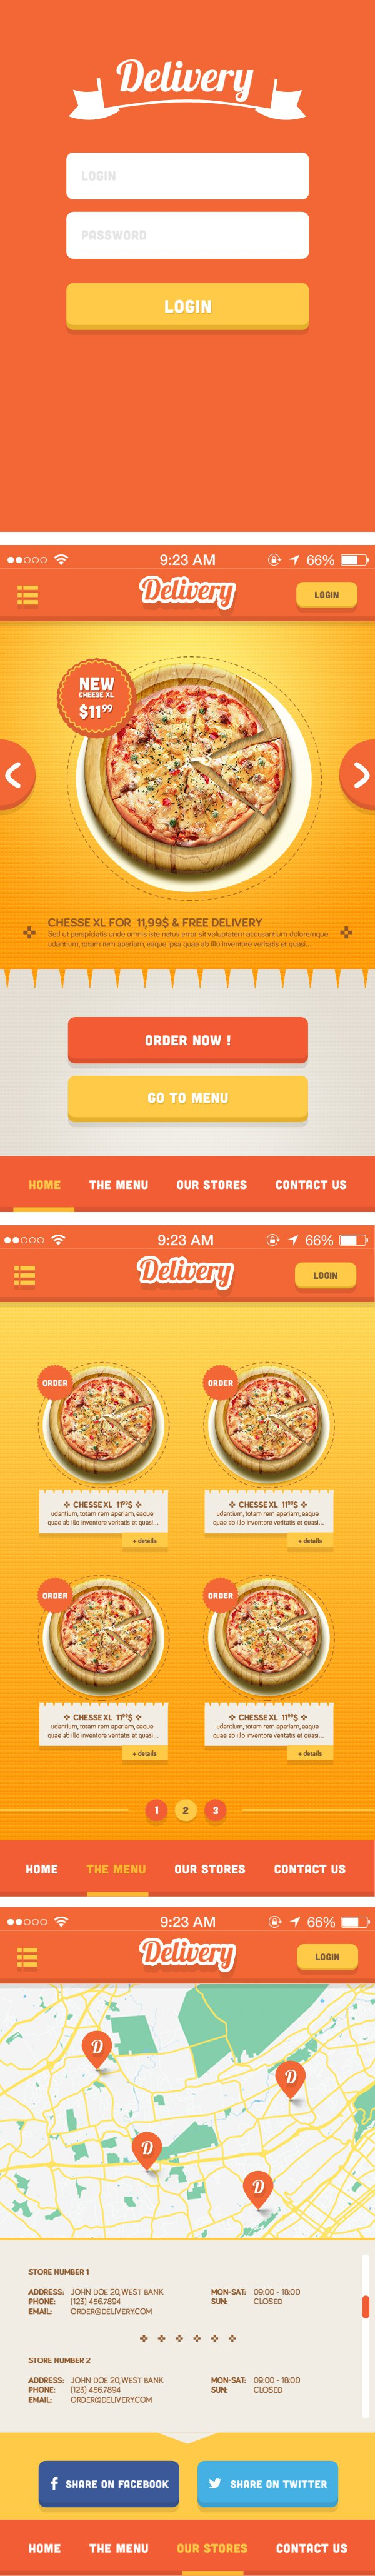 Delivery iPhone App UI Kit Psd